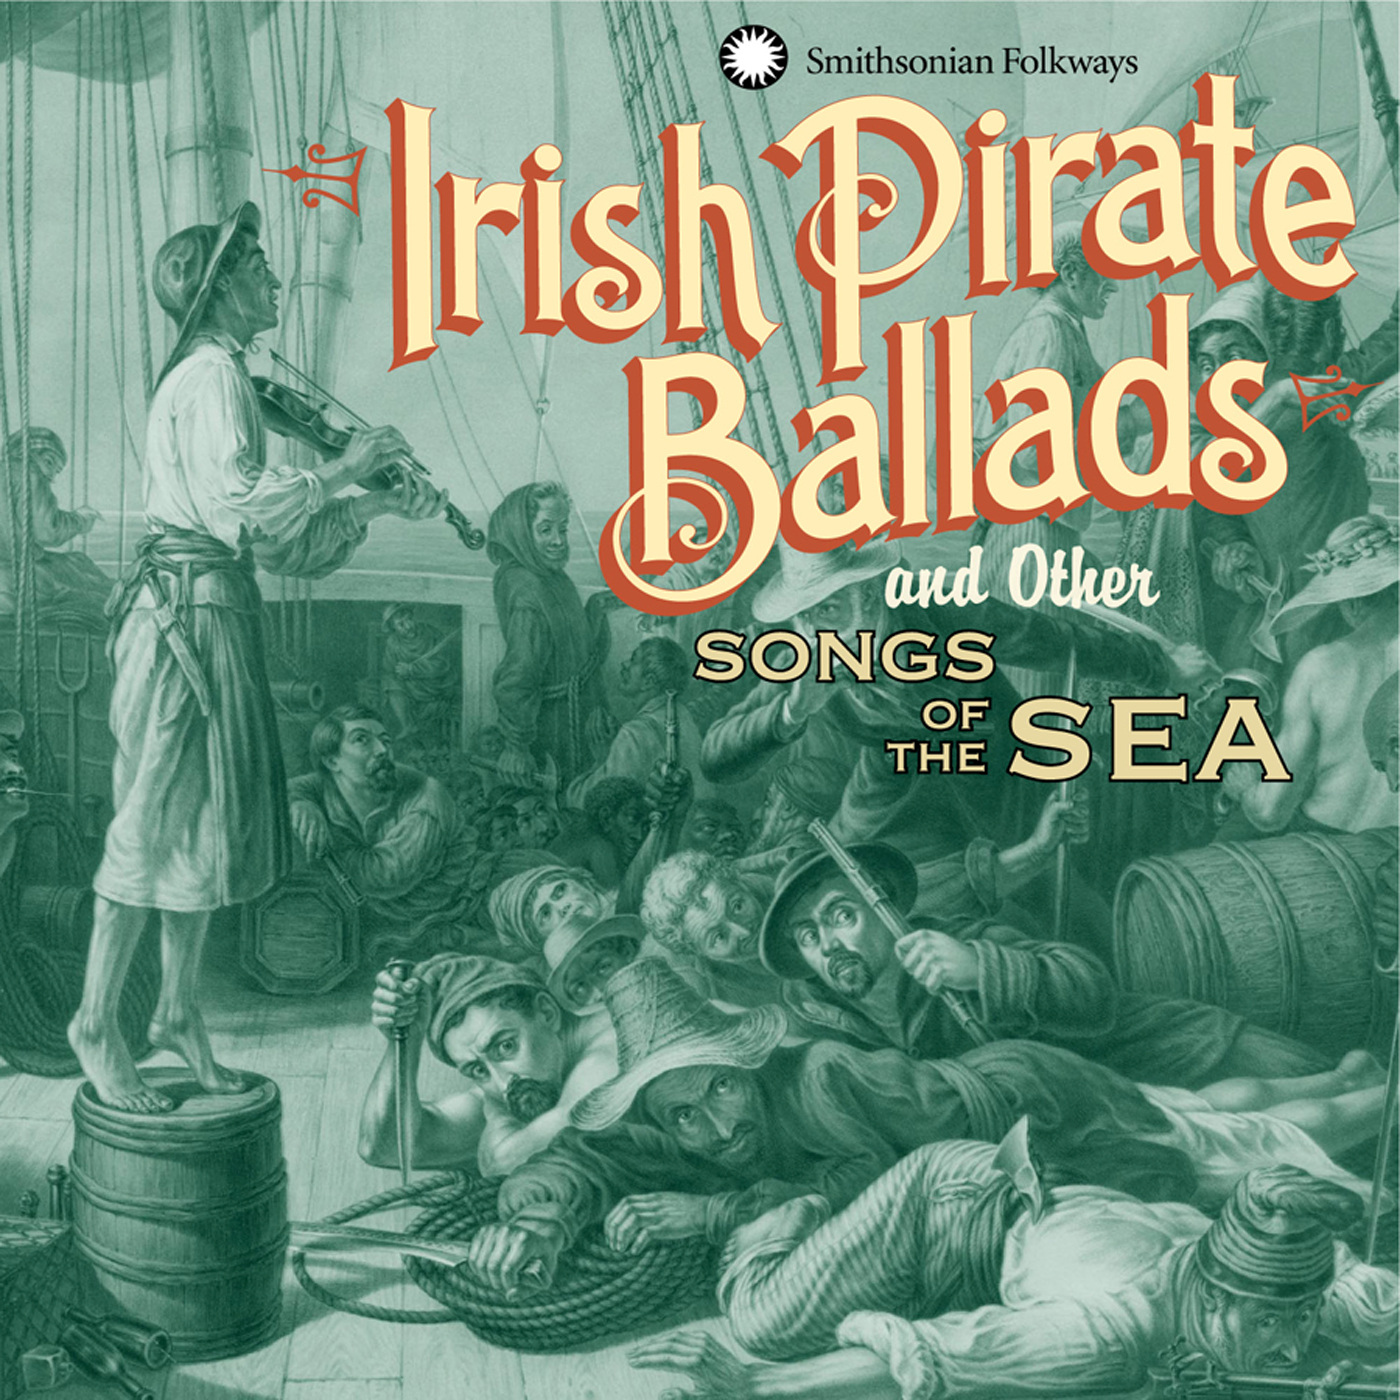 Irish Pirate Ballads and Other Songs of the Sea